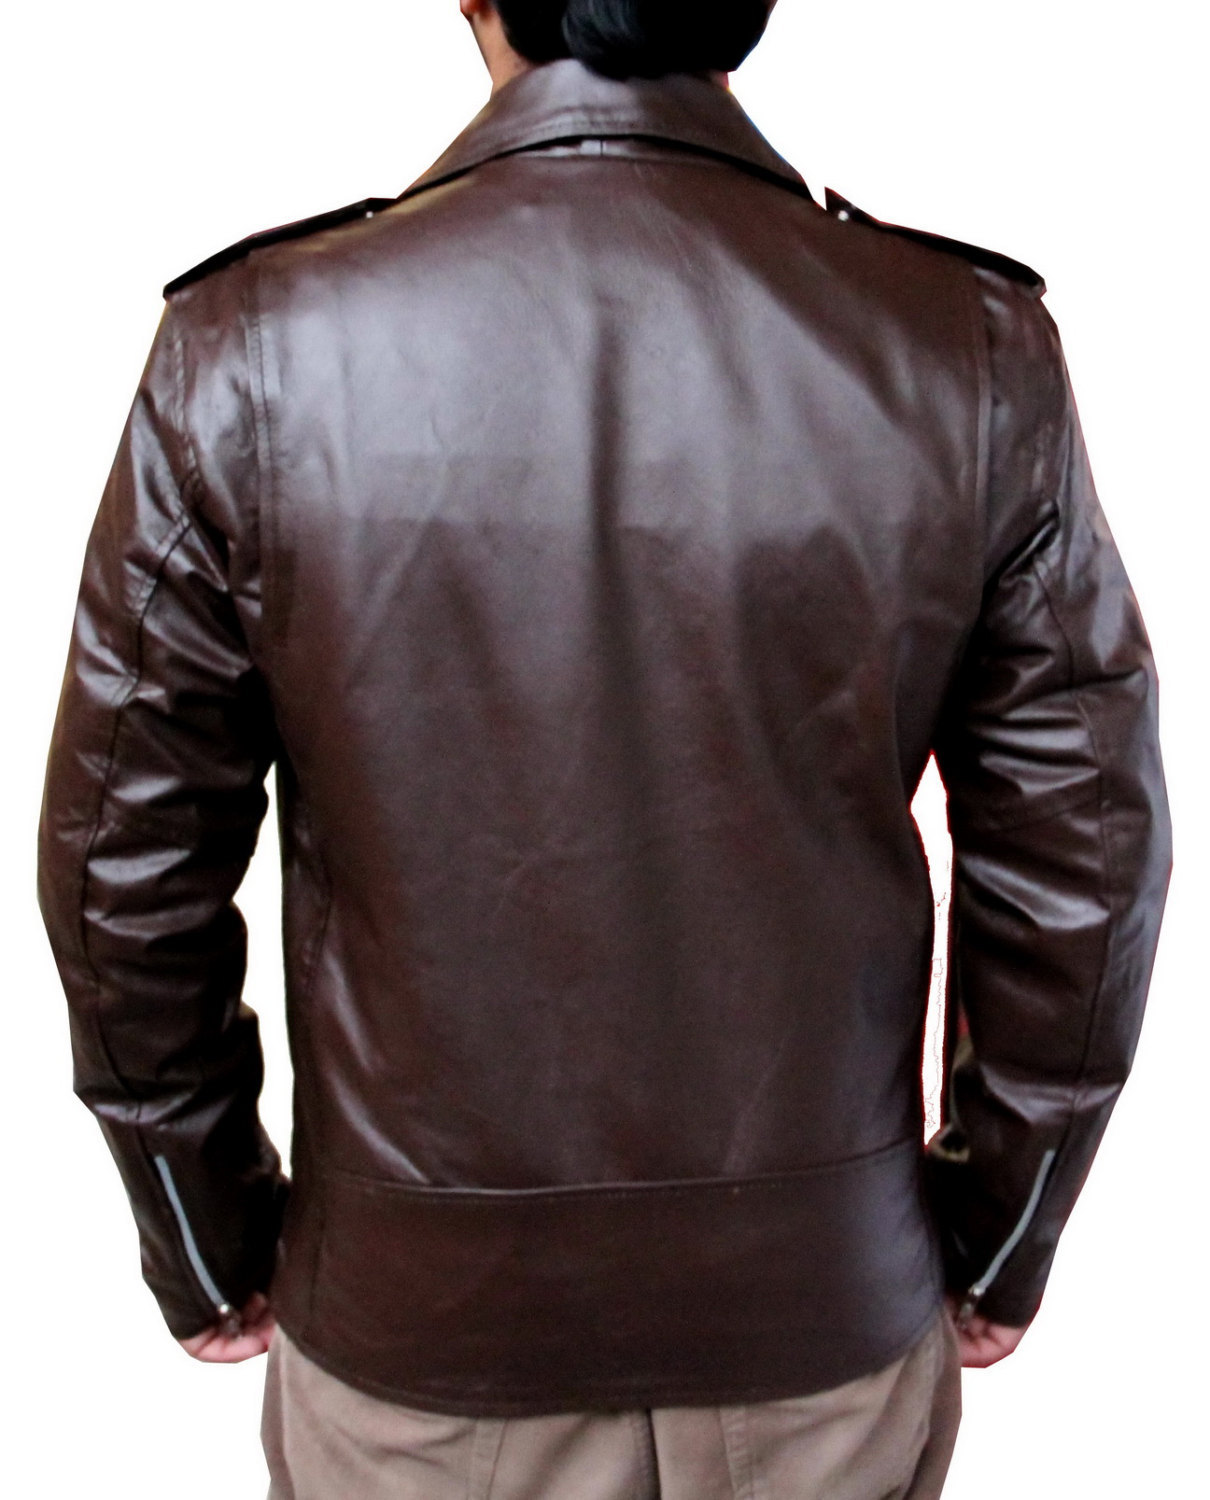 New look leather jackets